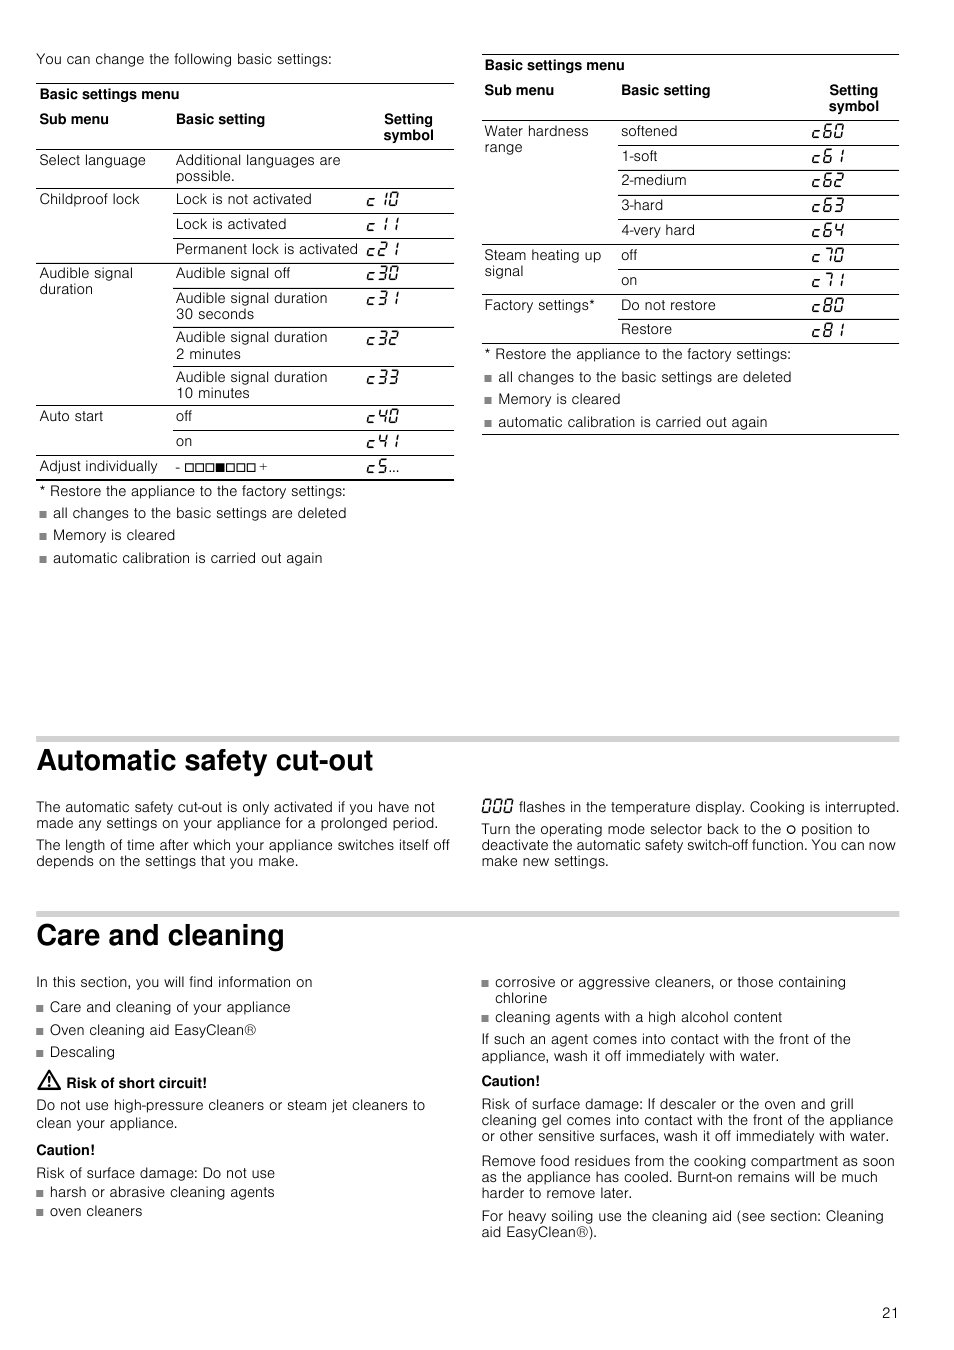 Automatic Safety Cut Out Care And Cleaning Oven Cleaning Aid